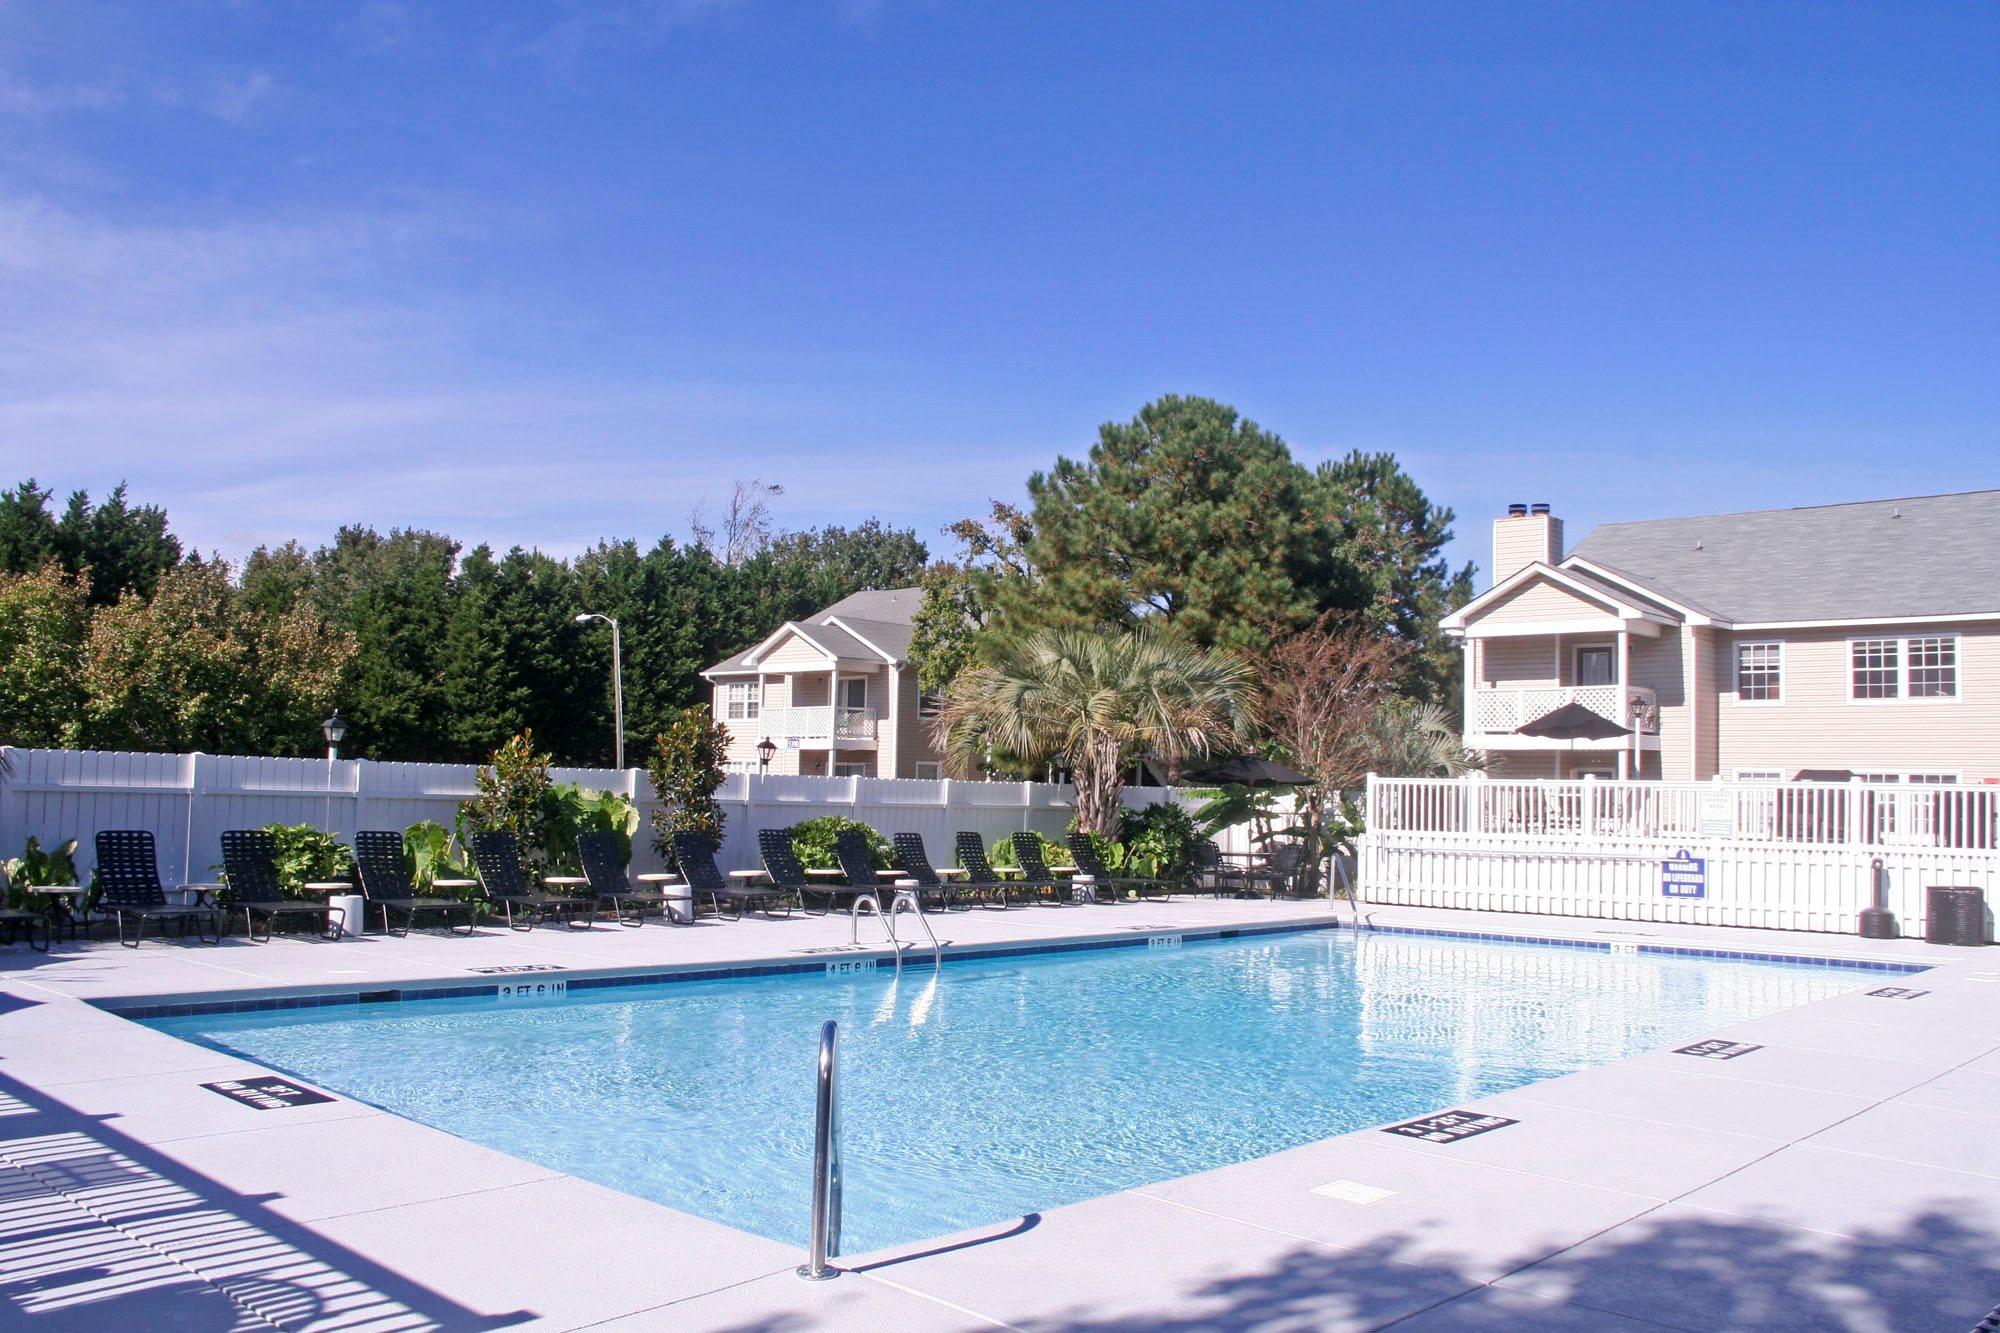 Wilmington Pointe Apartments